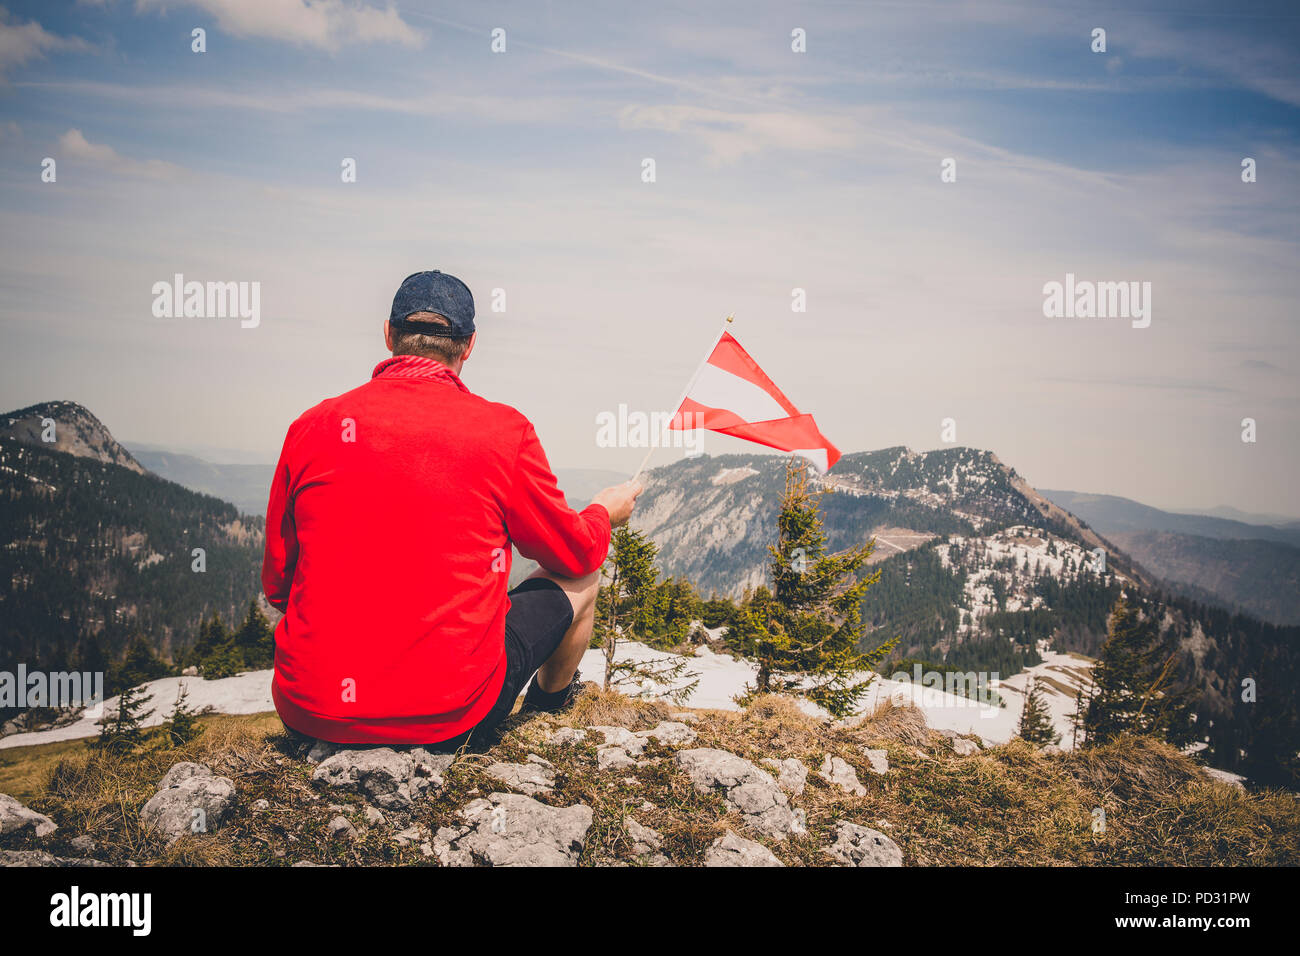 hiker with red sweater is holding an austria flag in the mountains - Stock Image